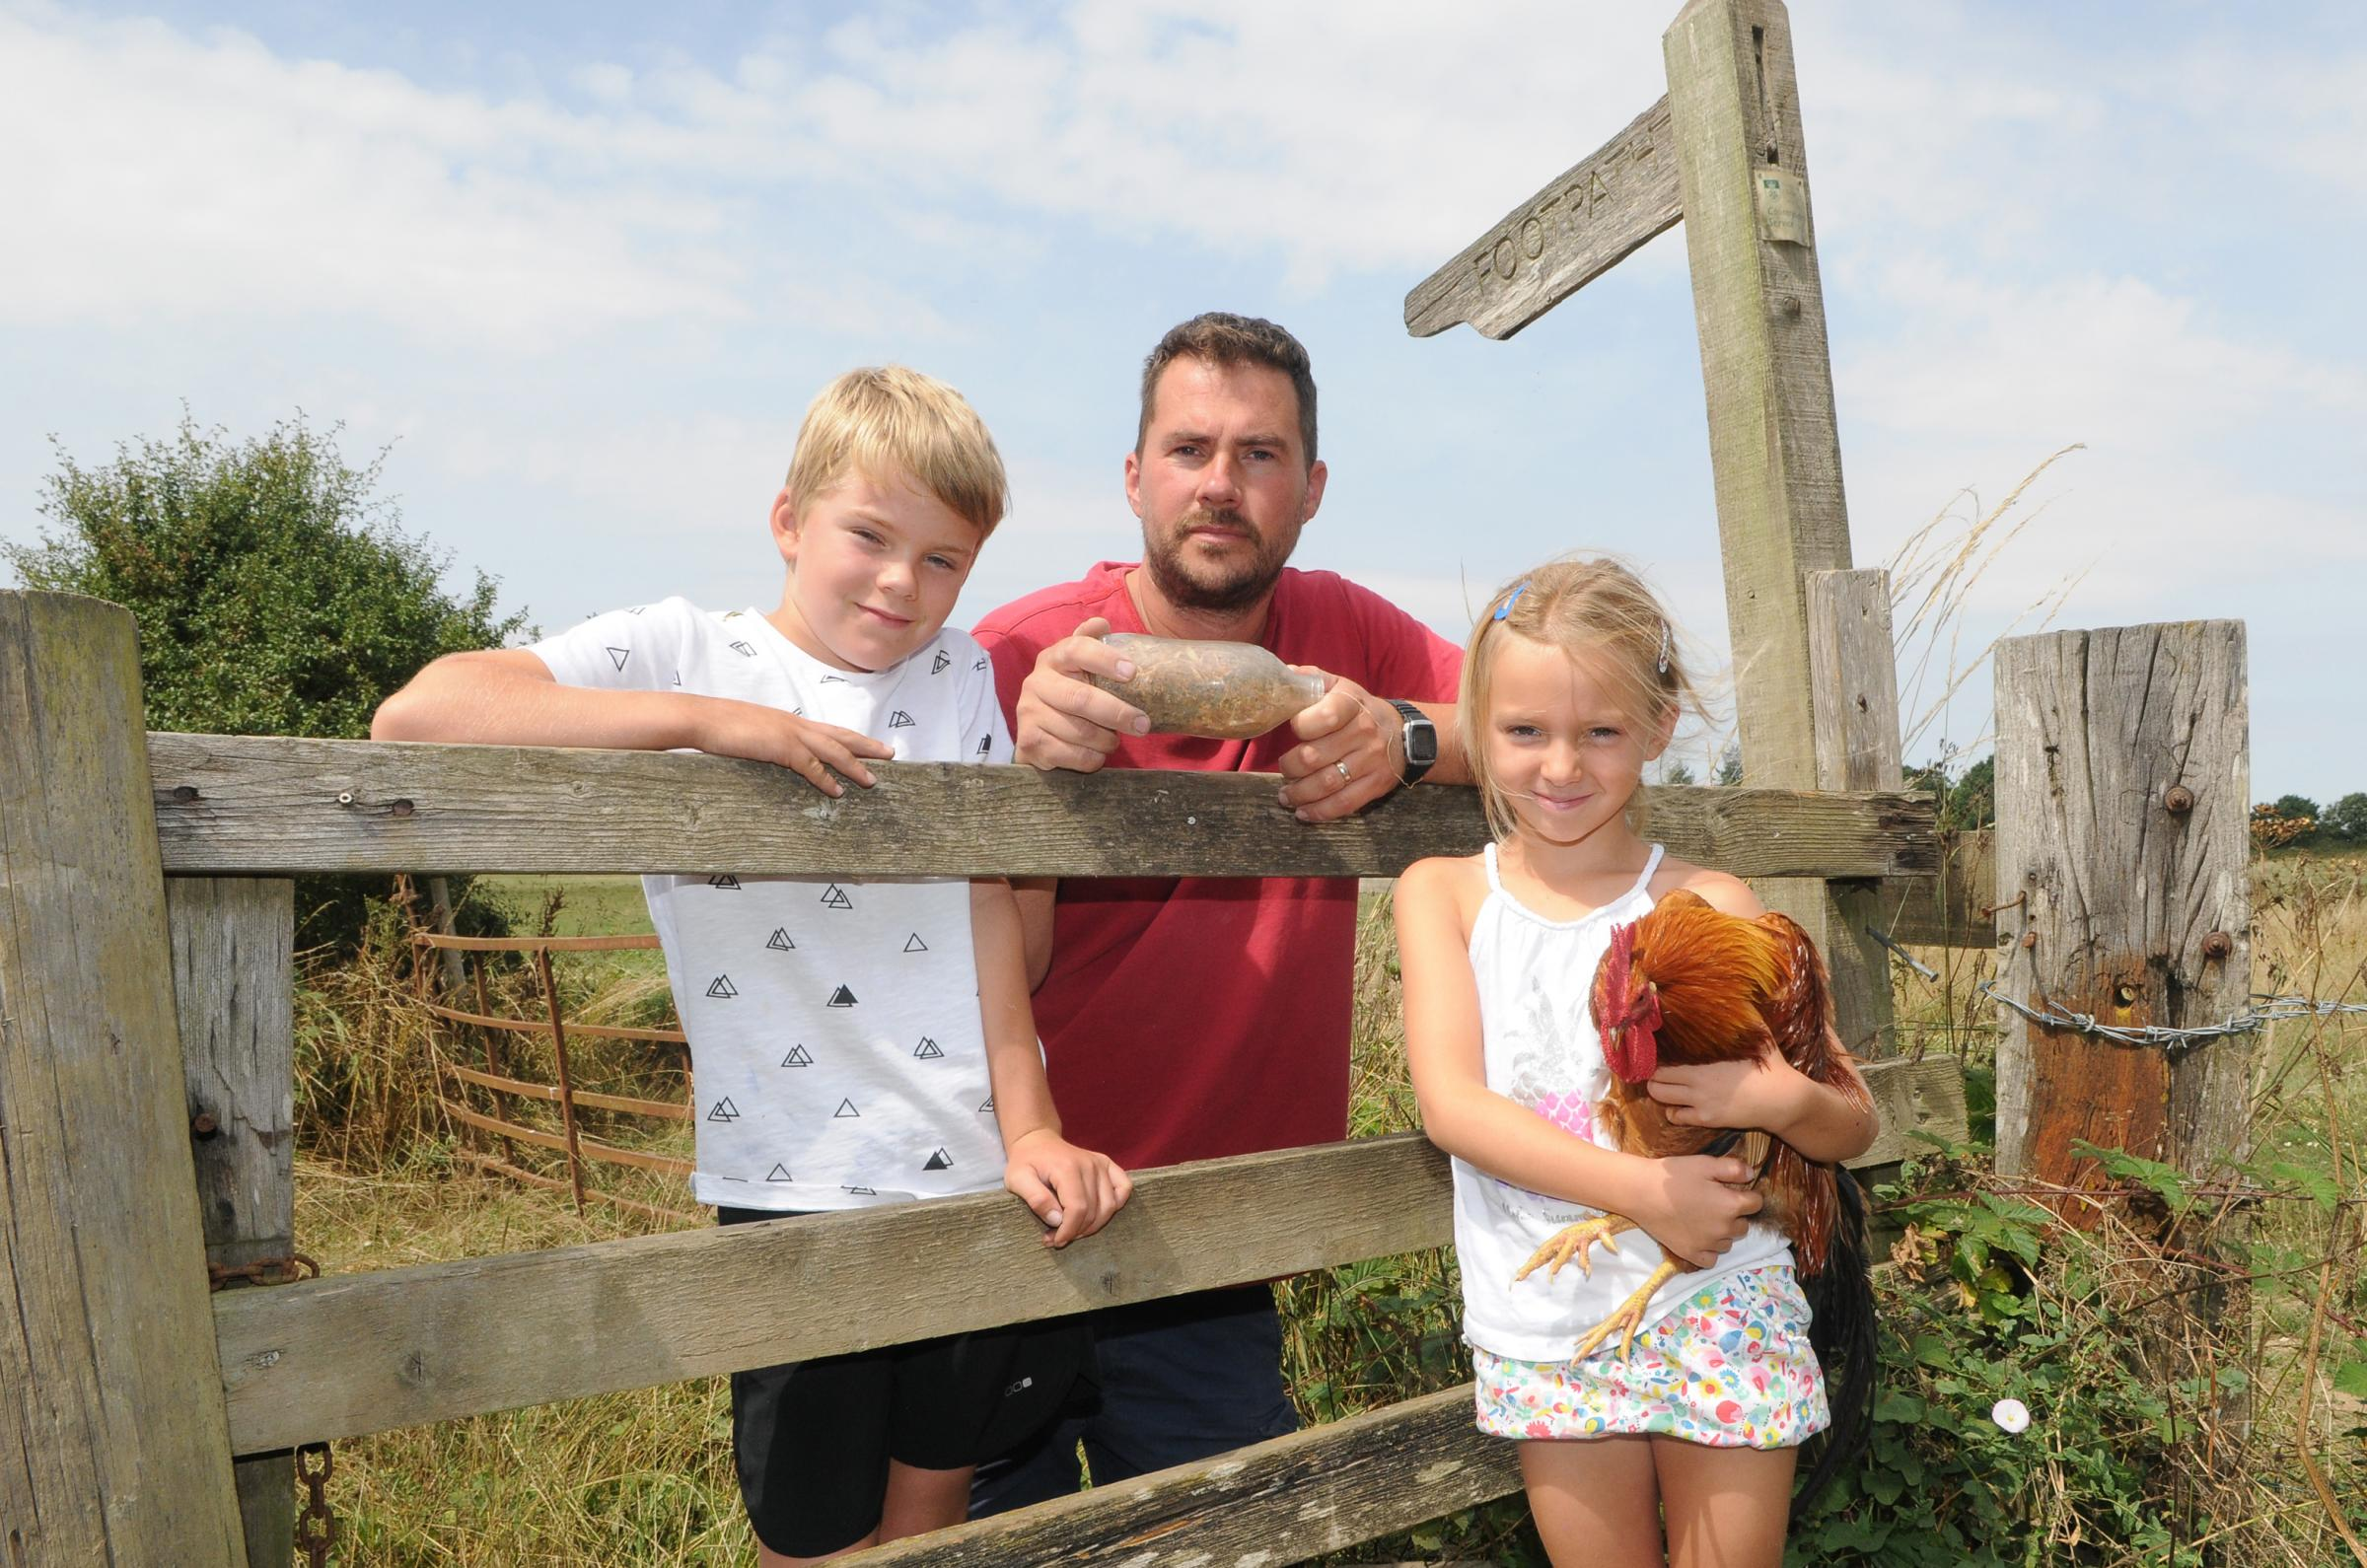 Graham Witt with son Alister, daughter Violet and rooster Goldie at Midgham Farm